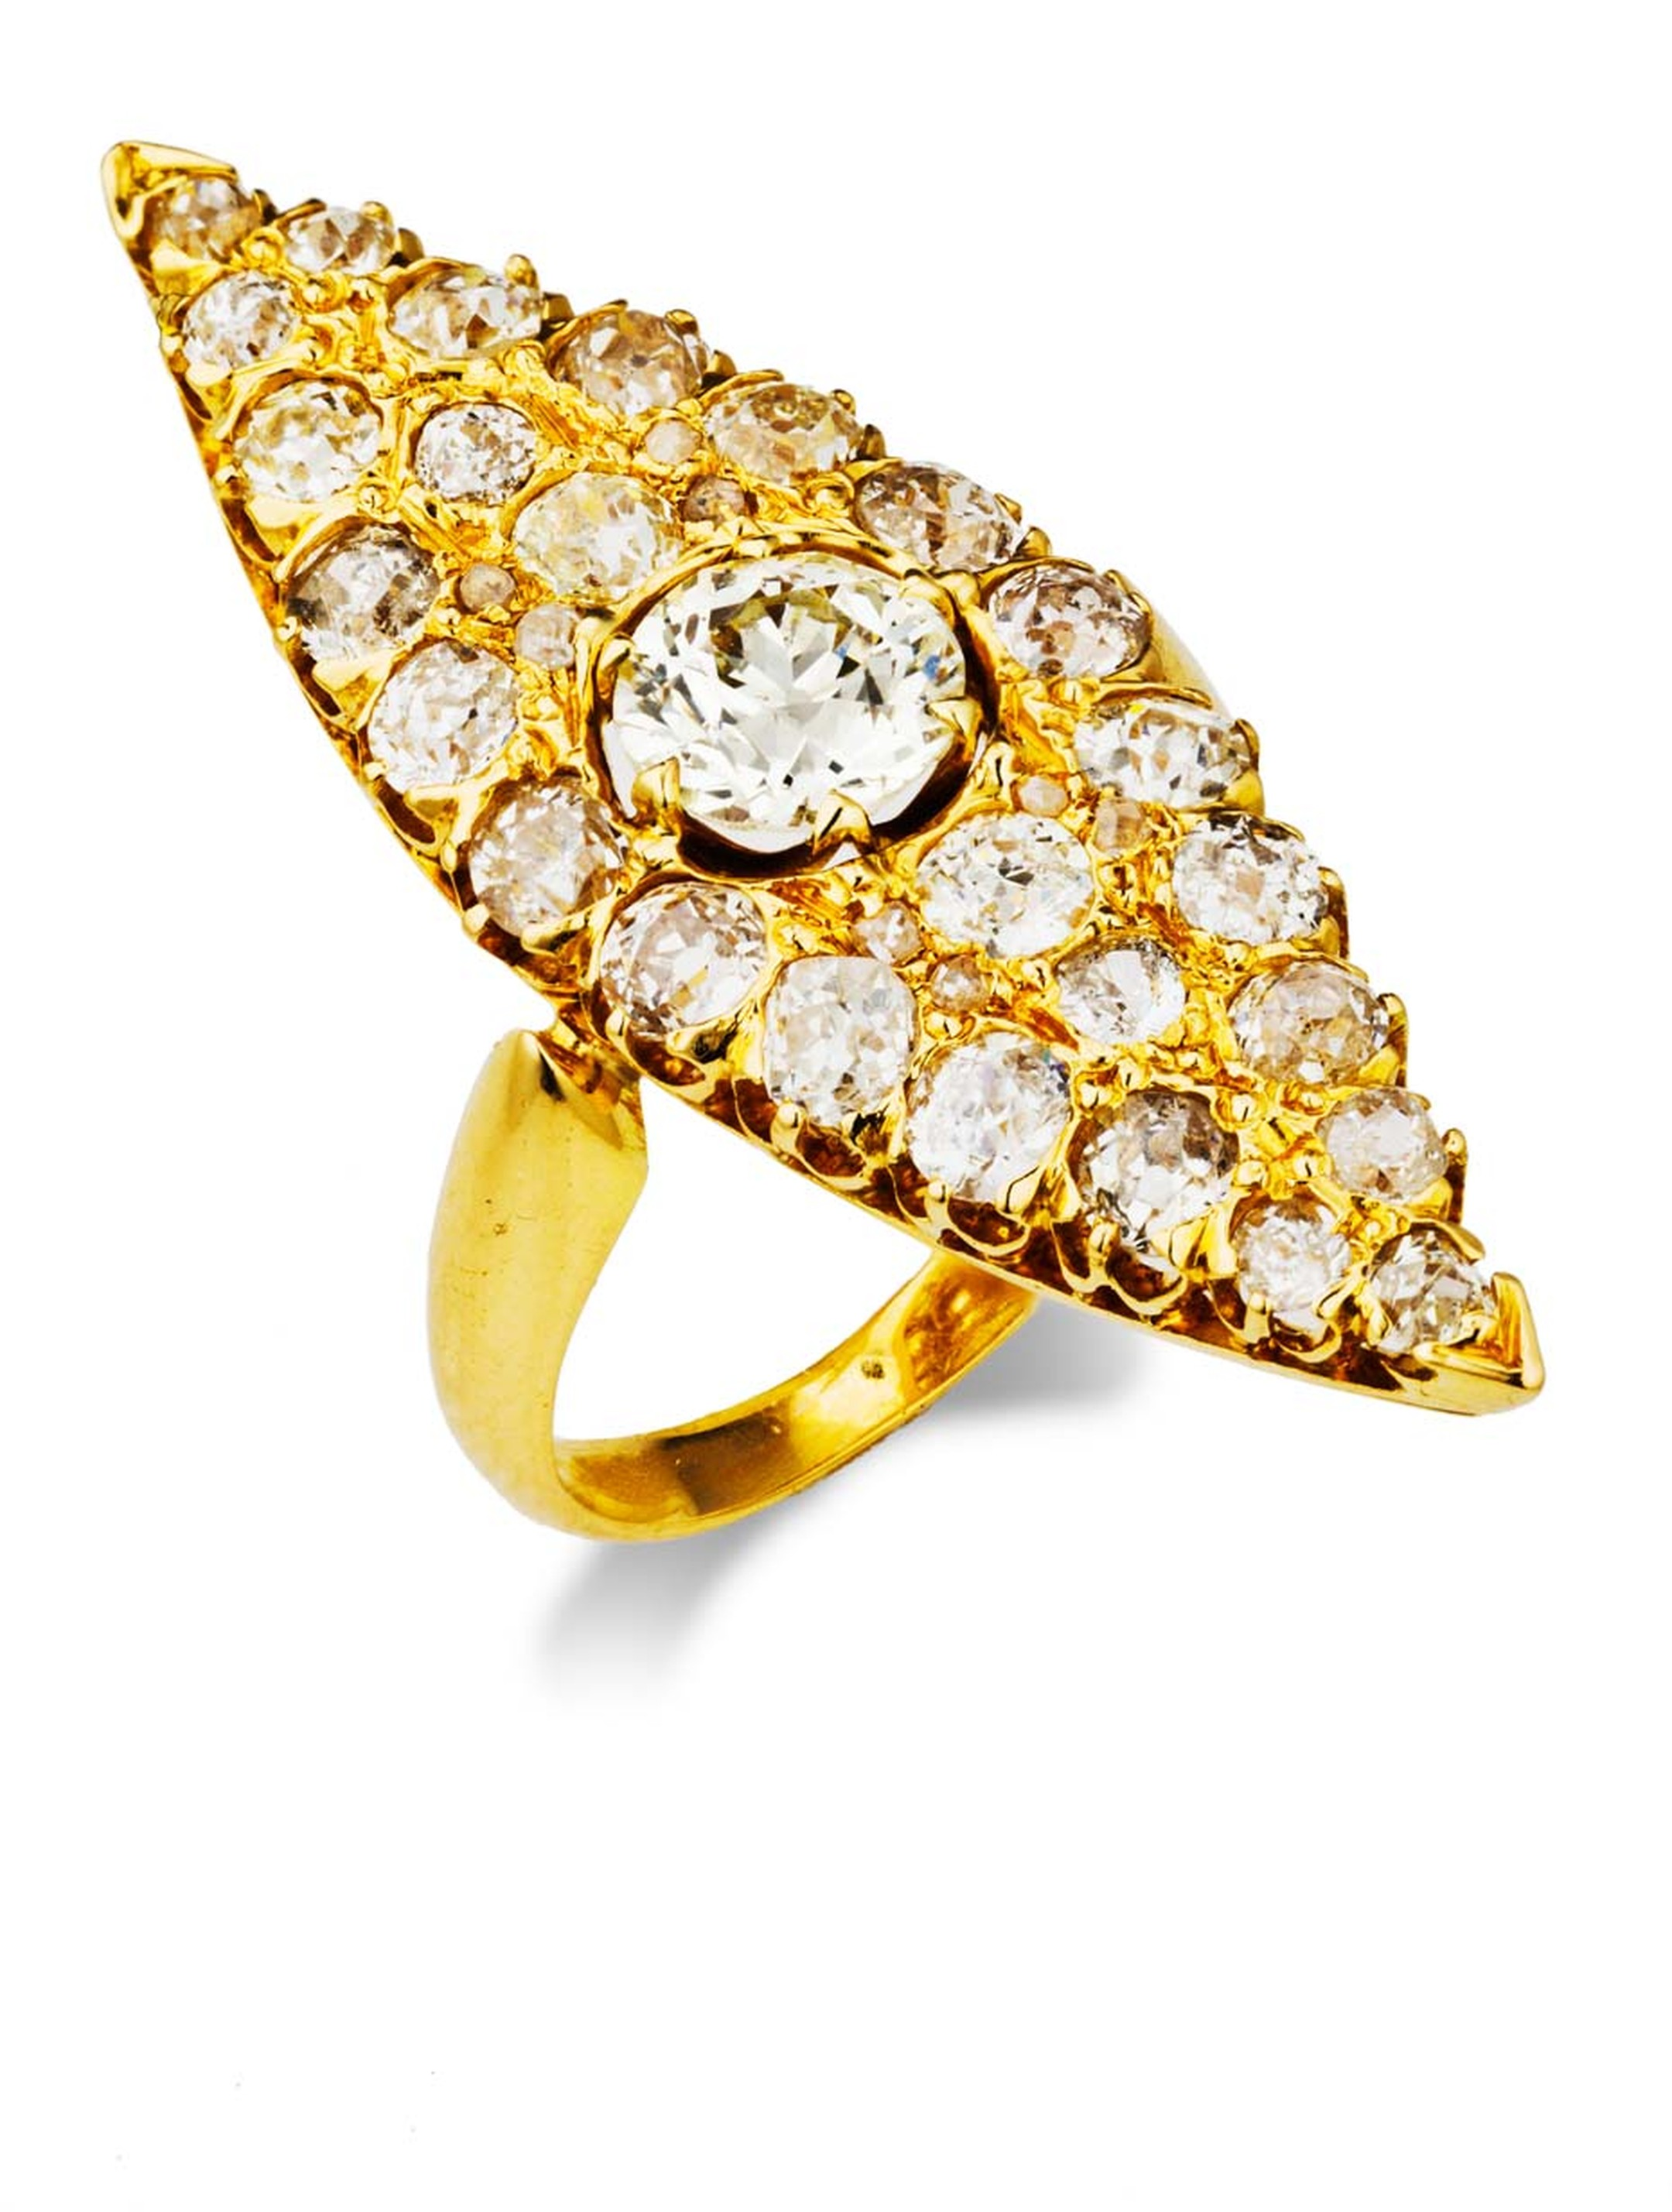 The diamond and gold nevette Neil Lane ring worn by actress Elisabeth Moss to the Screen Actors Guild Awards 2014